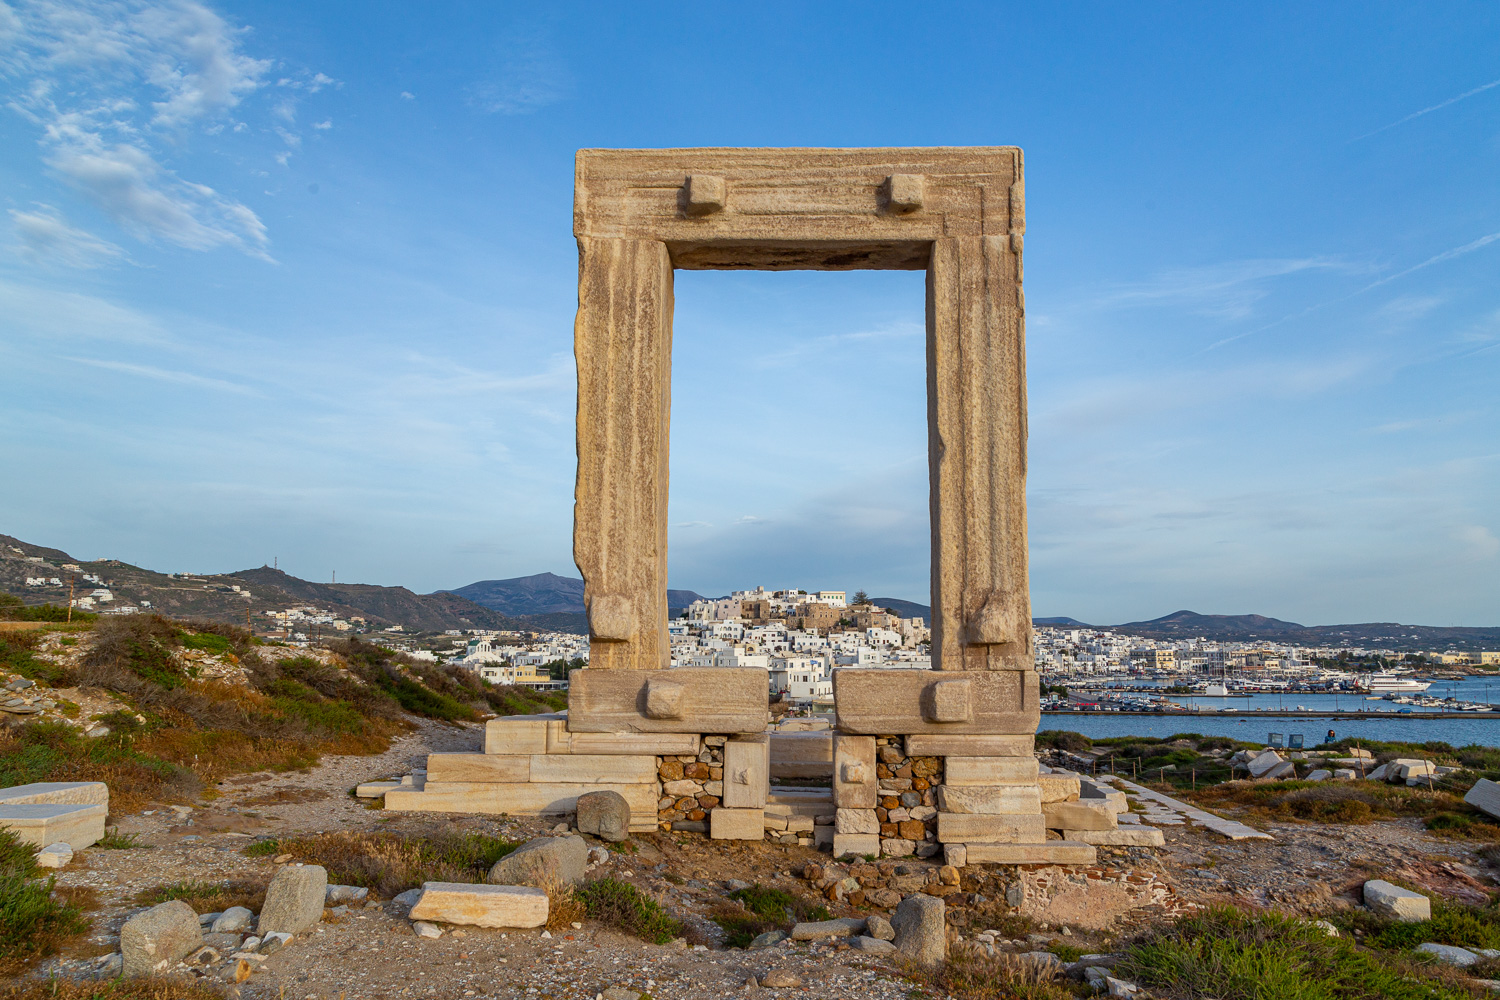 The Temple of Apollo stands in front of Naxos